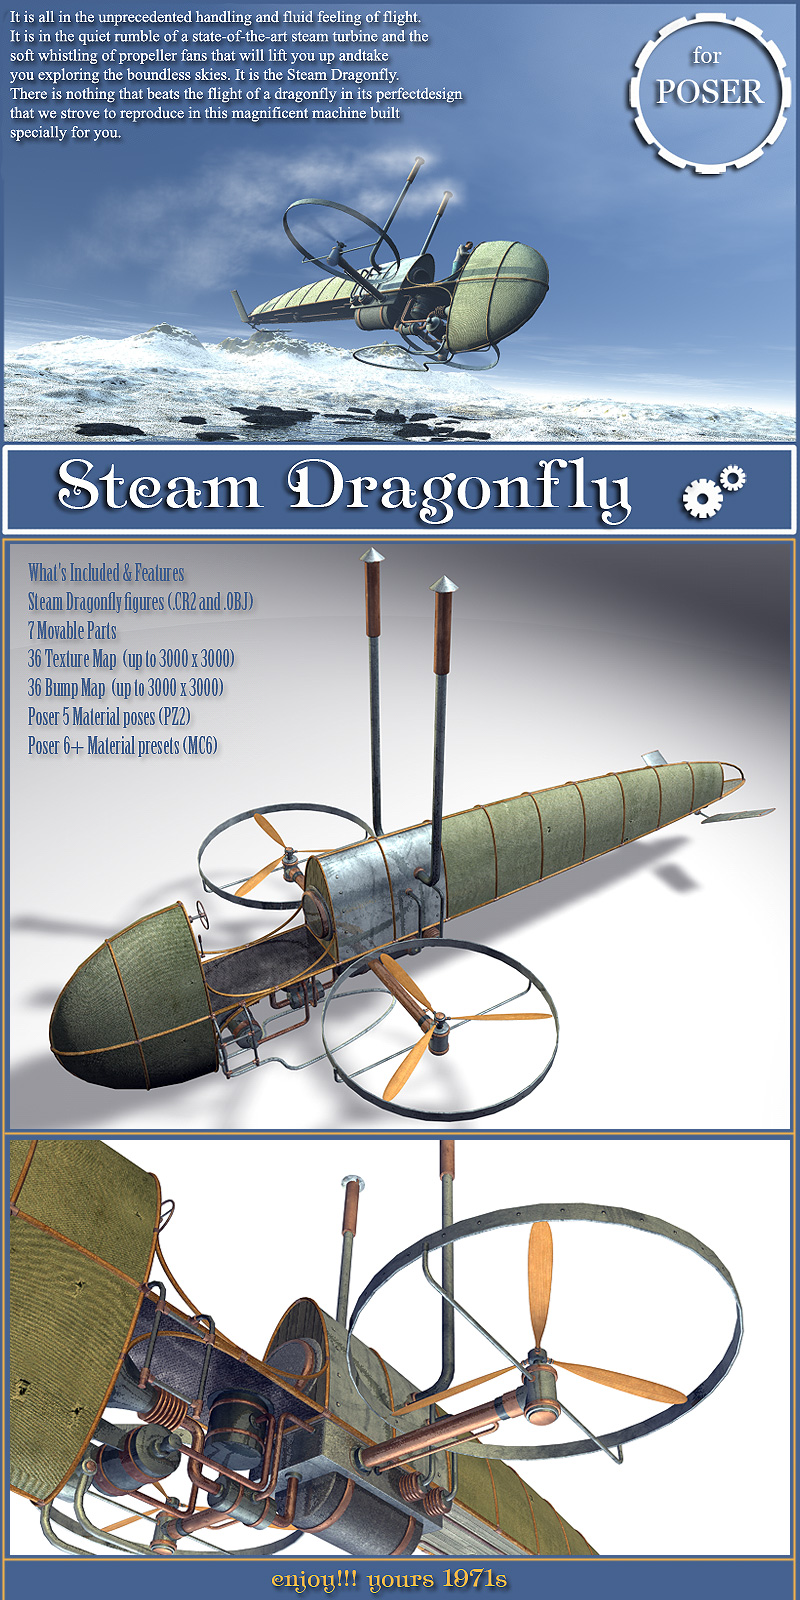 Steam Dragonfly